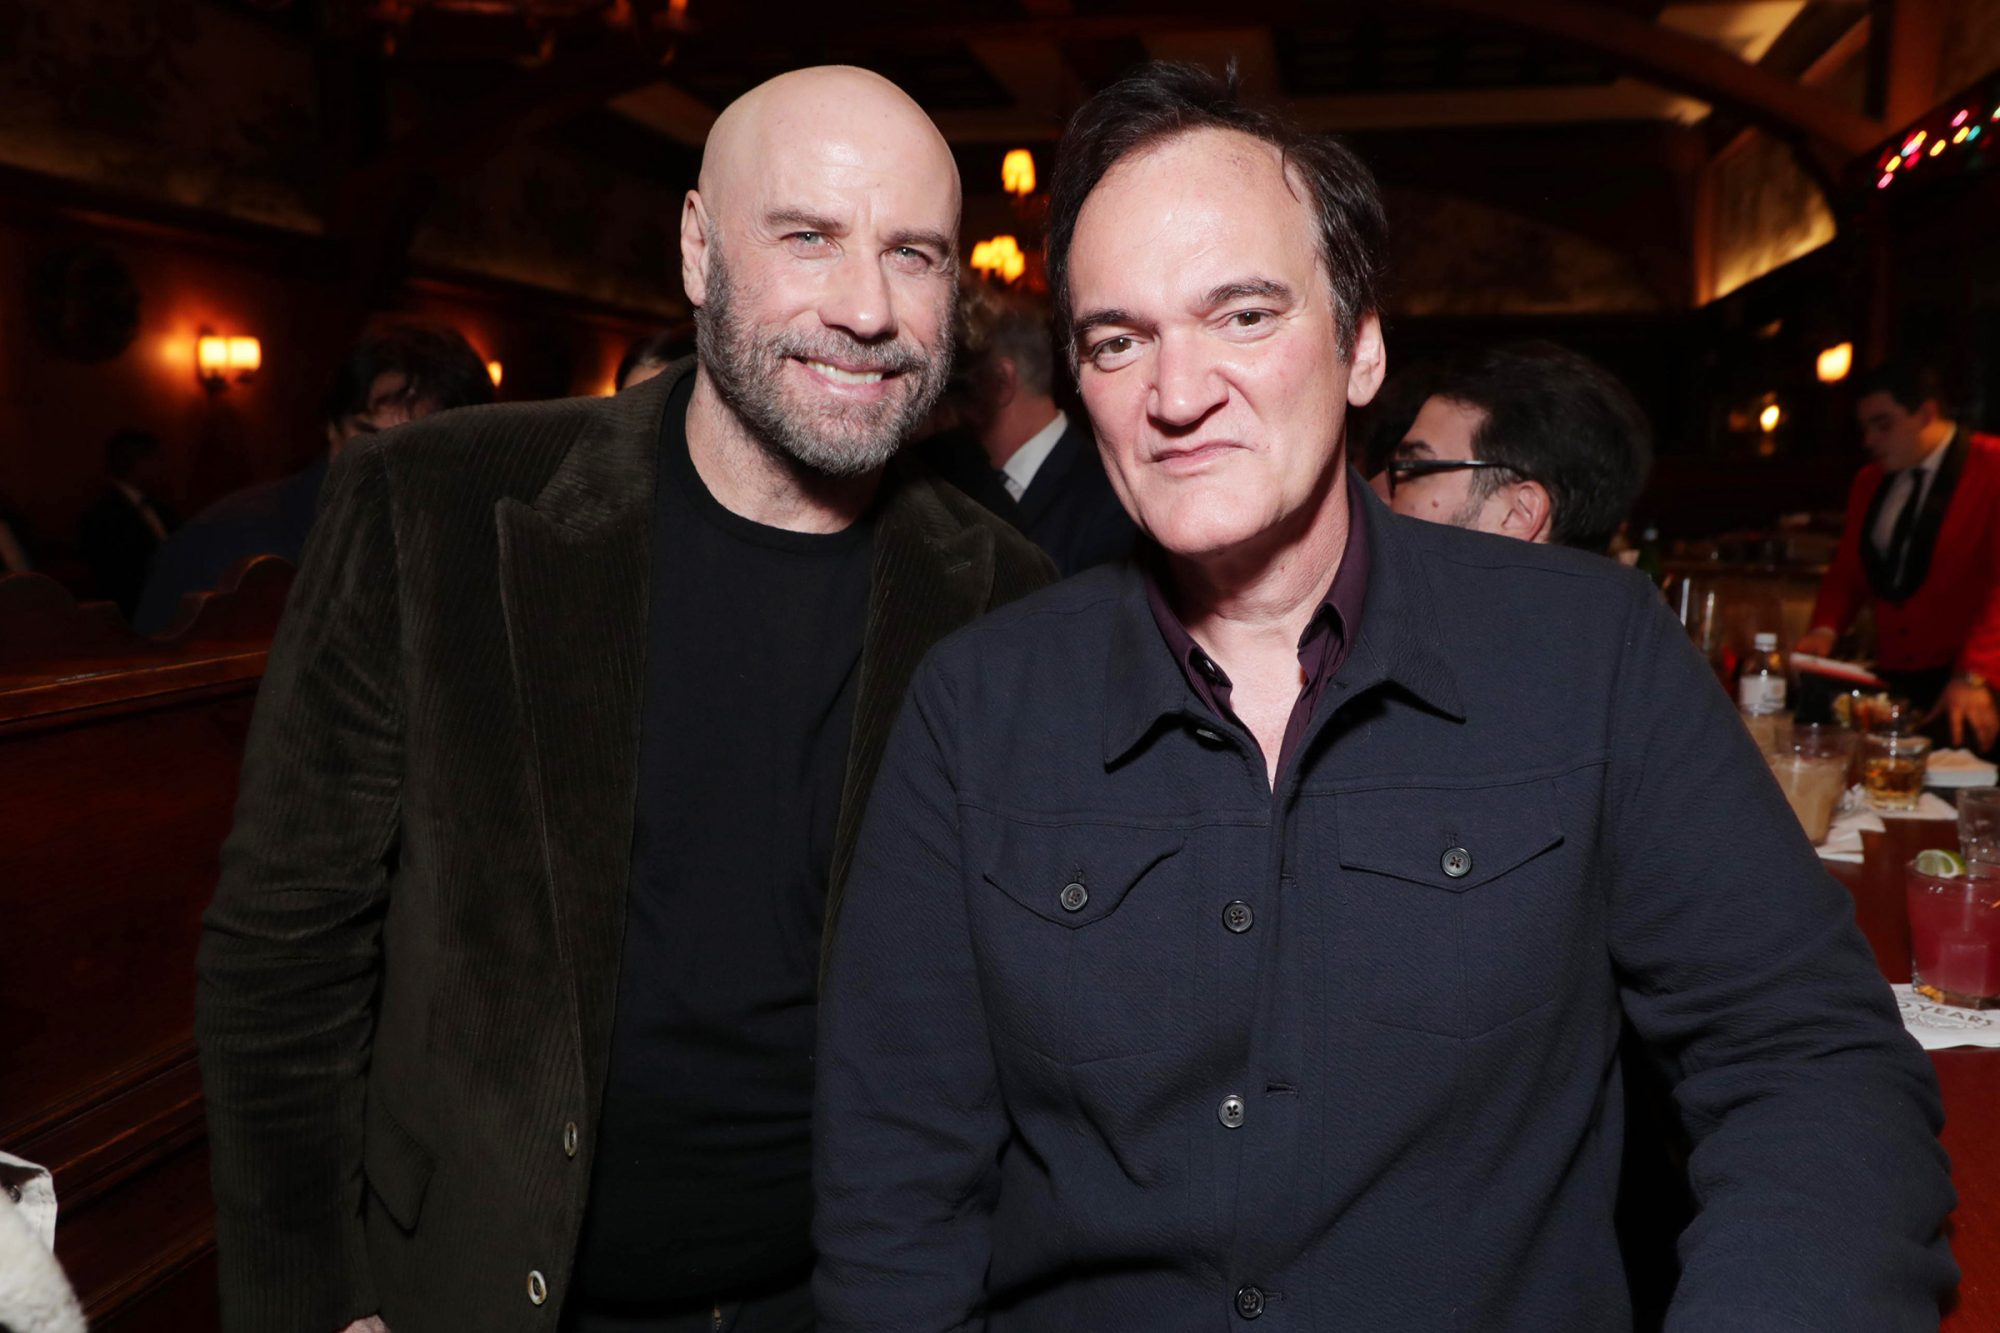 John Travolta and Writer/Director/Producer Quentin Tarantino Exclusive - 'Once Upon a Time in Hollywood' event at The Musso and Frank Grill, Los Angeles, USA - 02 Dec 2019